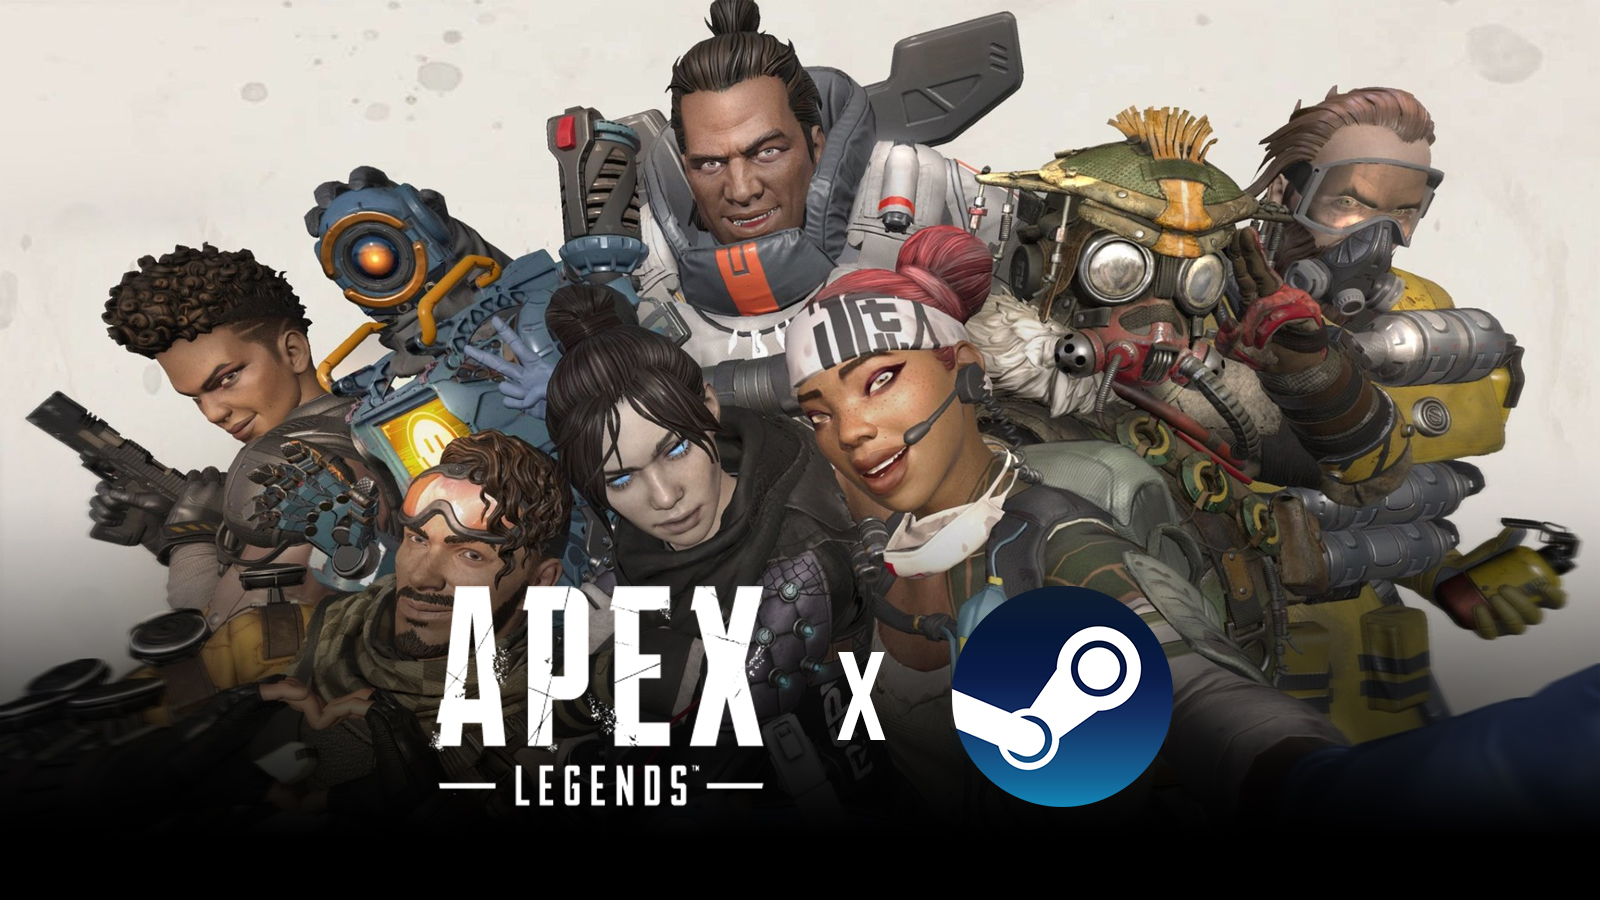 All Apex Legends launch characters with Steam logo